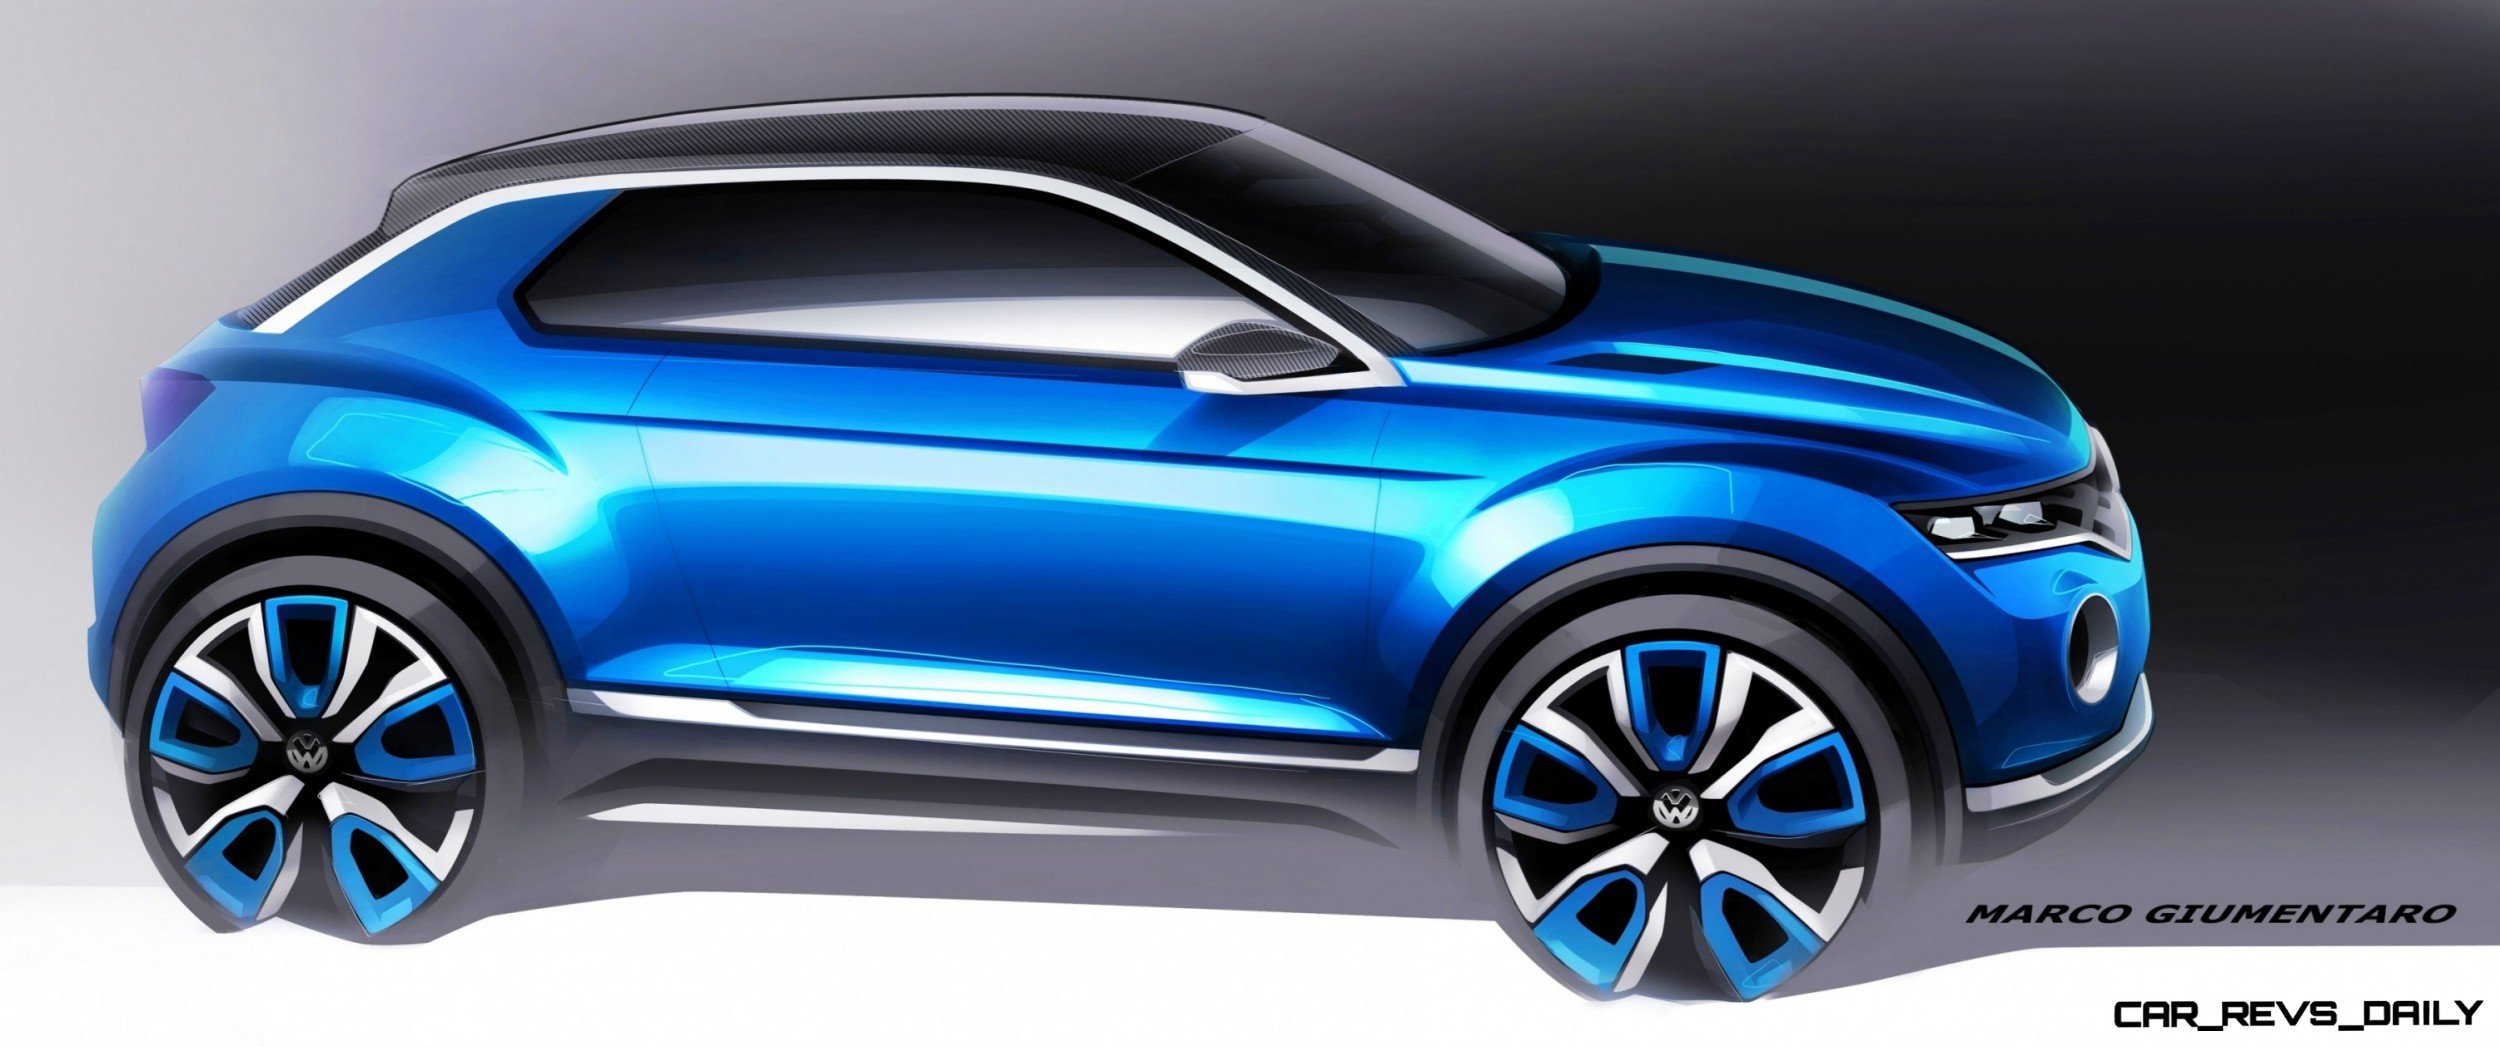 VW T-ROC -- A High-Tech Jeep Wrangler for the Digital Age -- Hot Style -- Real 4WD -- Removable Roof Panels VW T-ROC -- A High-Tech Jeep Wrangler for the Digital Age -- Hot Style -- Real 4WD -- Removable Roof Panels